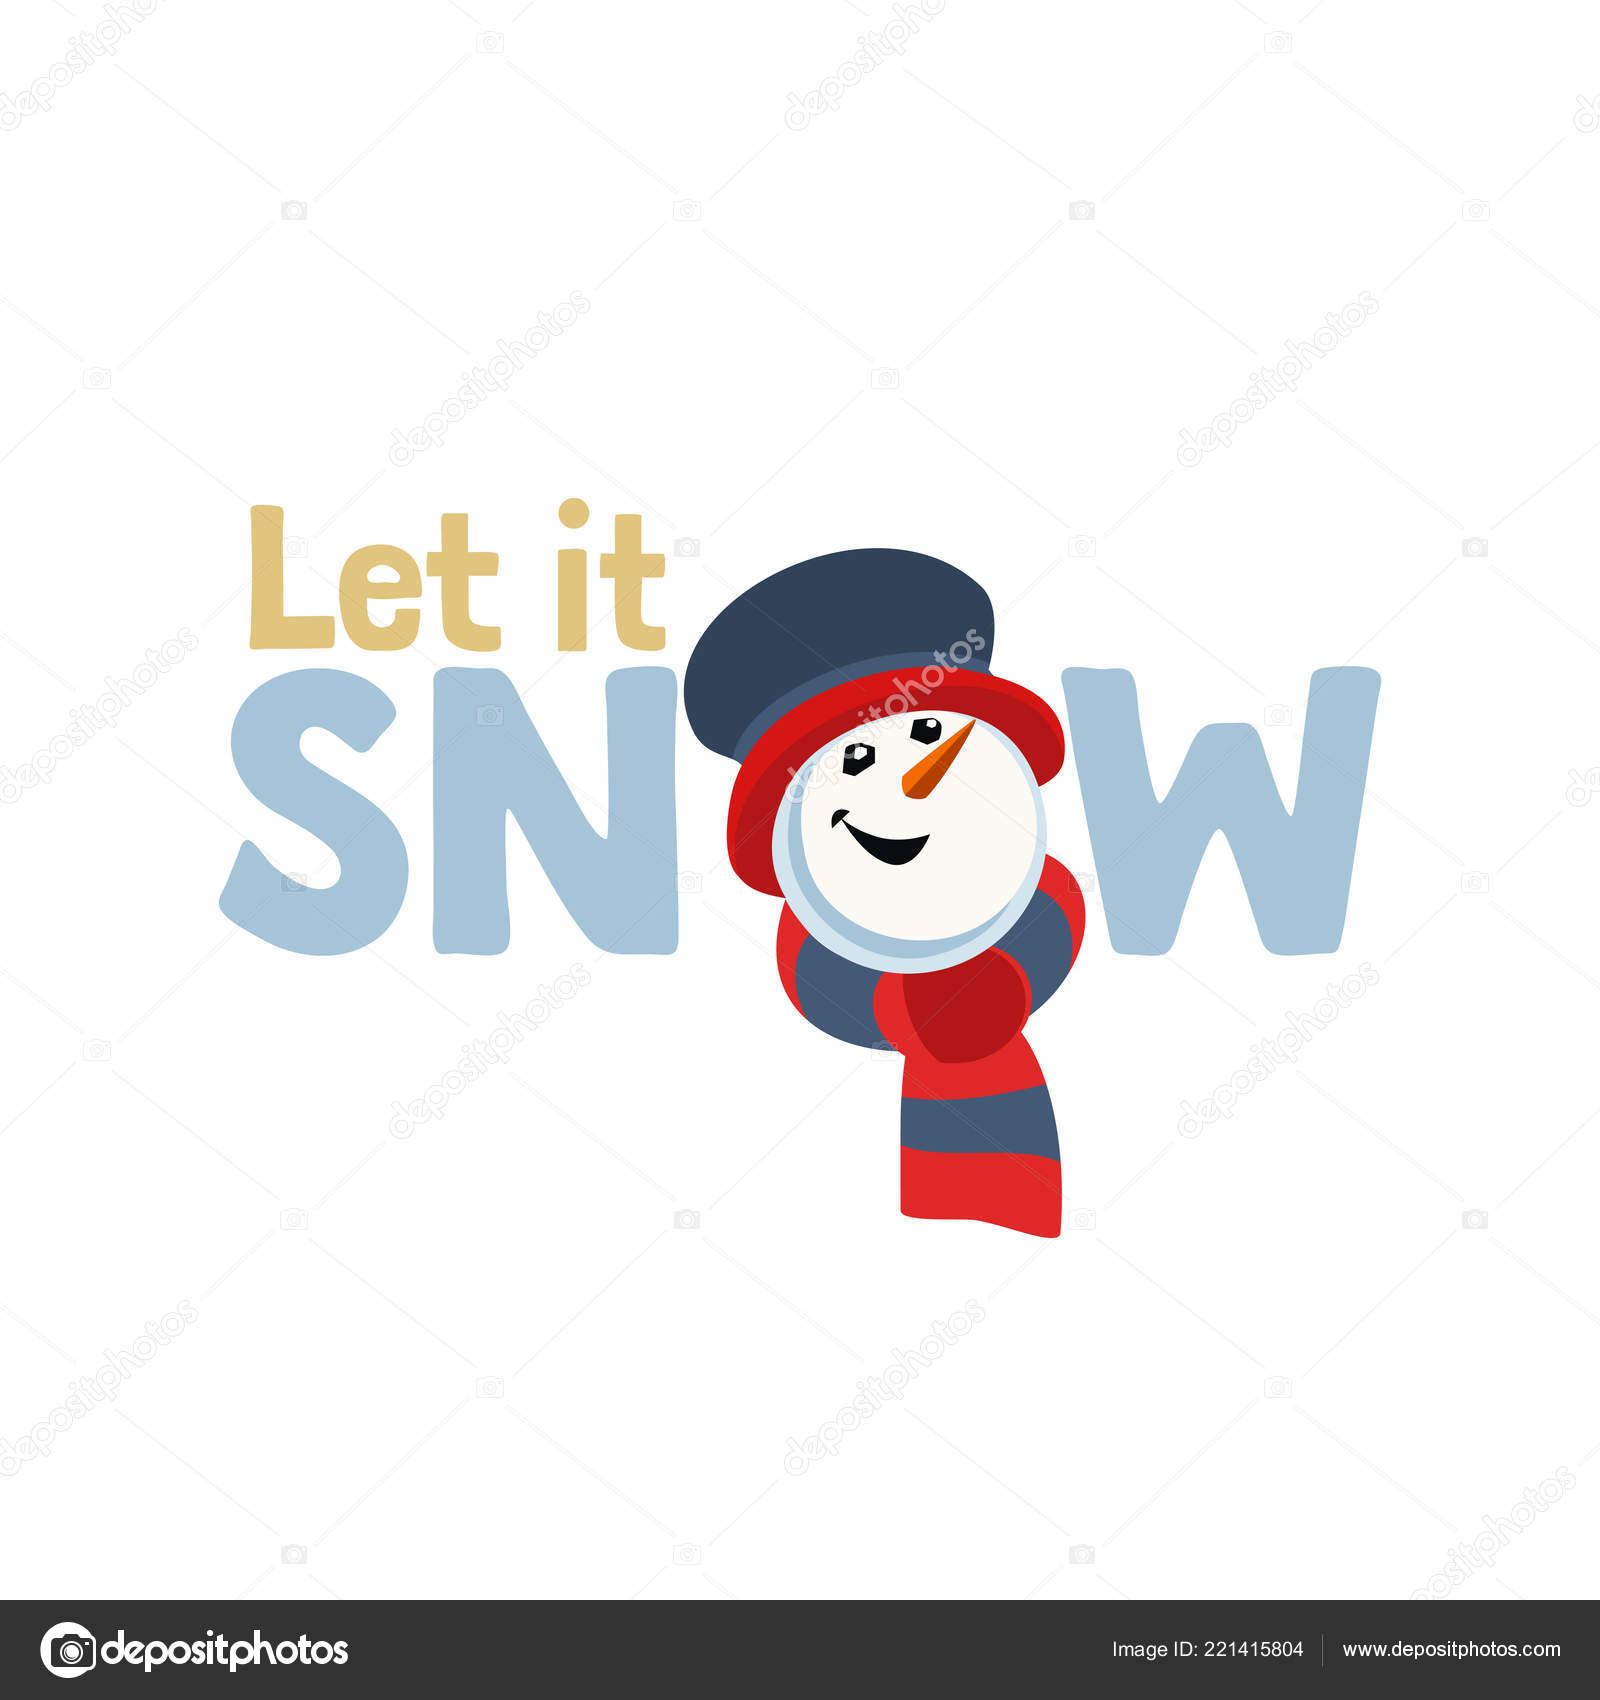 Holiday Wishes Let Snow Fancy Letters Cartoon Playful Fun Snowman